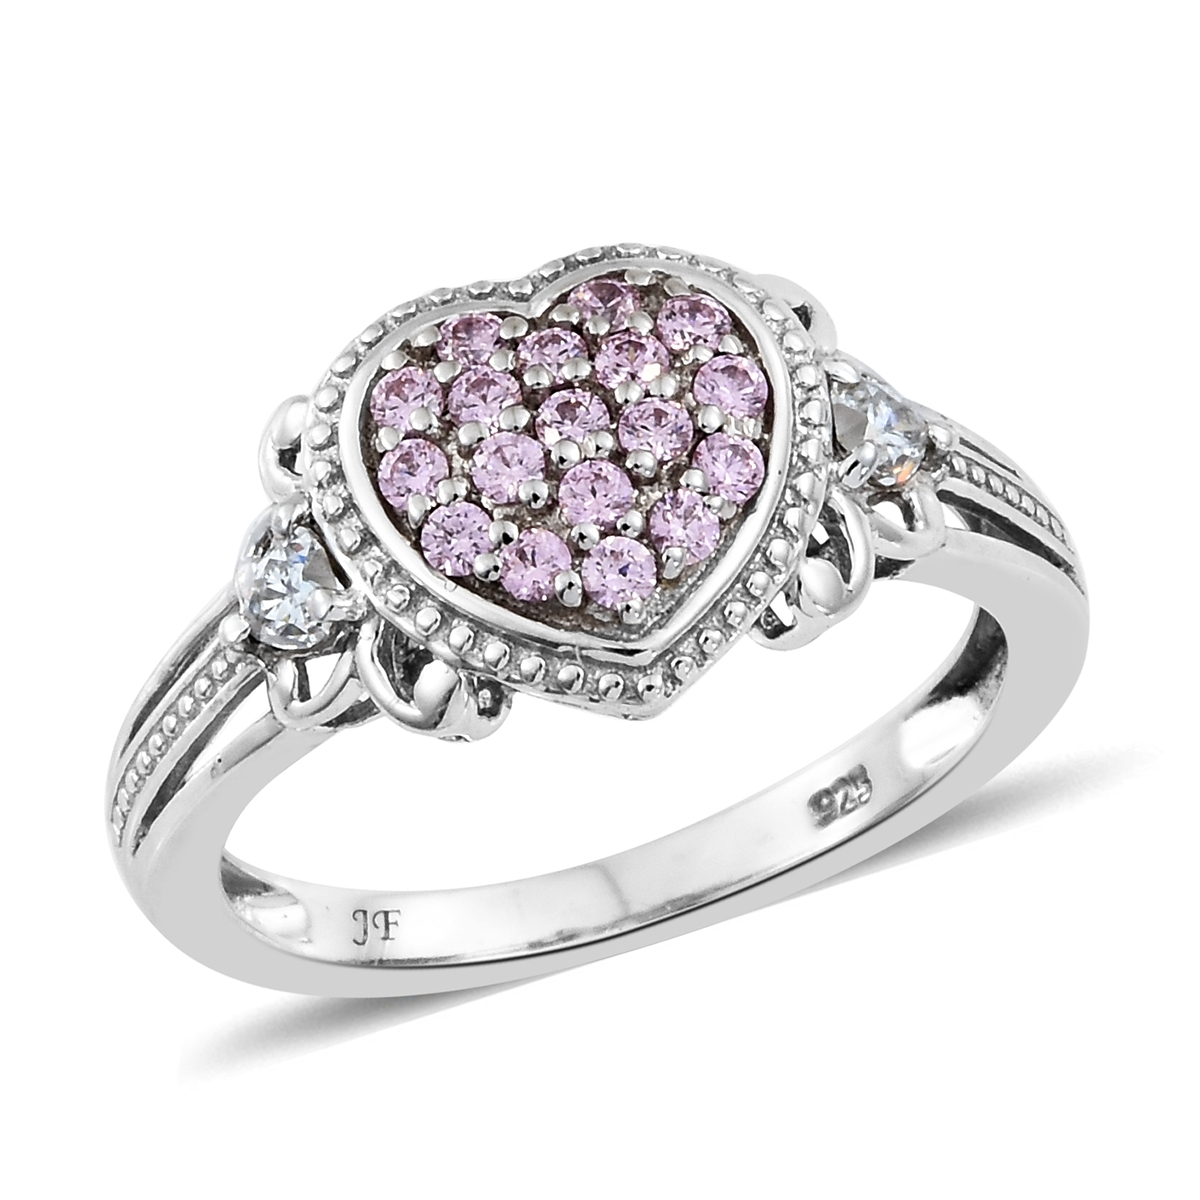 51dfae8b2 J Francis - Platinum Over Sterling Silver Mini Cluster Heart Ring Made with  Pink and White SWAROVSKI ZIRCONIA (Size 8.0) TGW 1.15 cts. | Shop LC